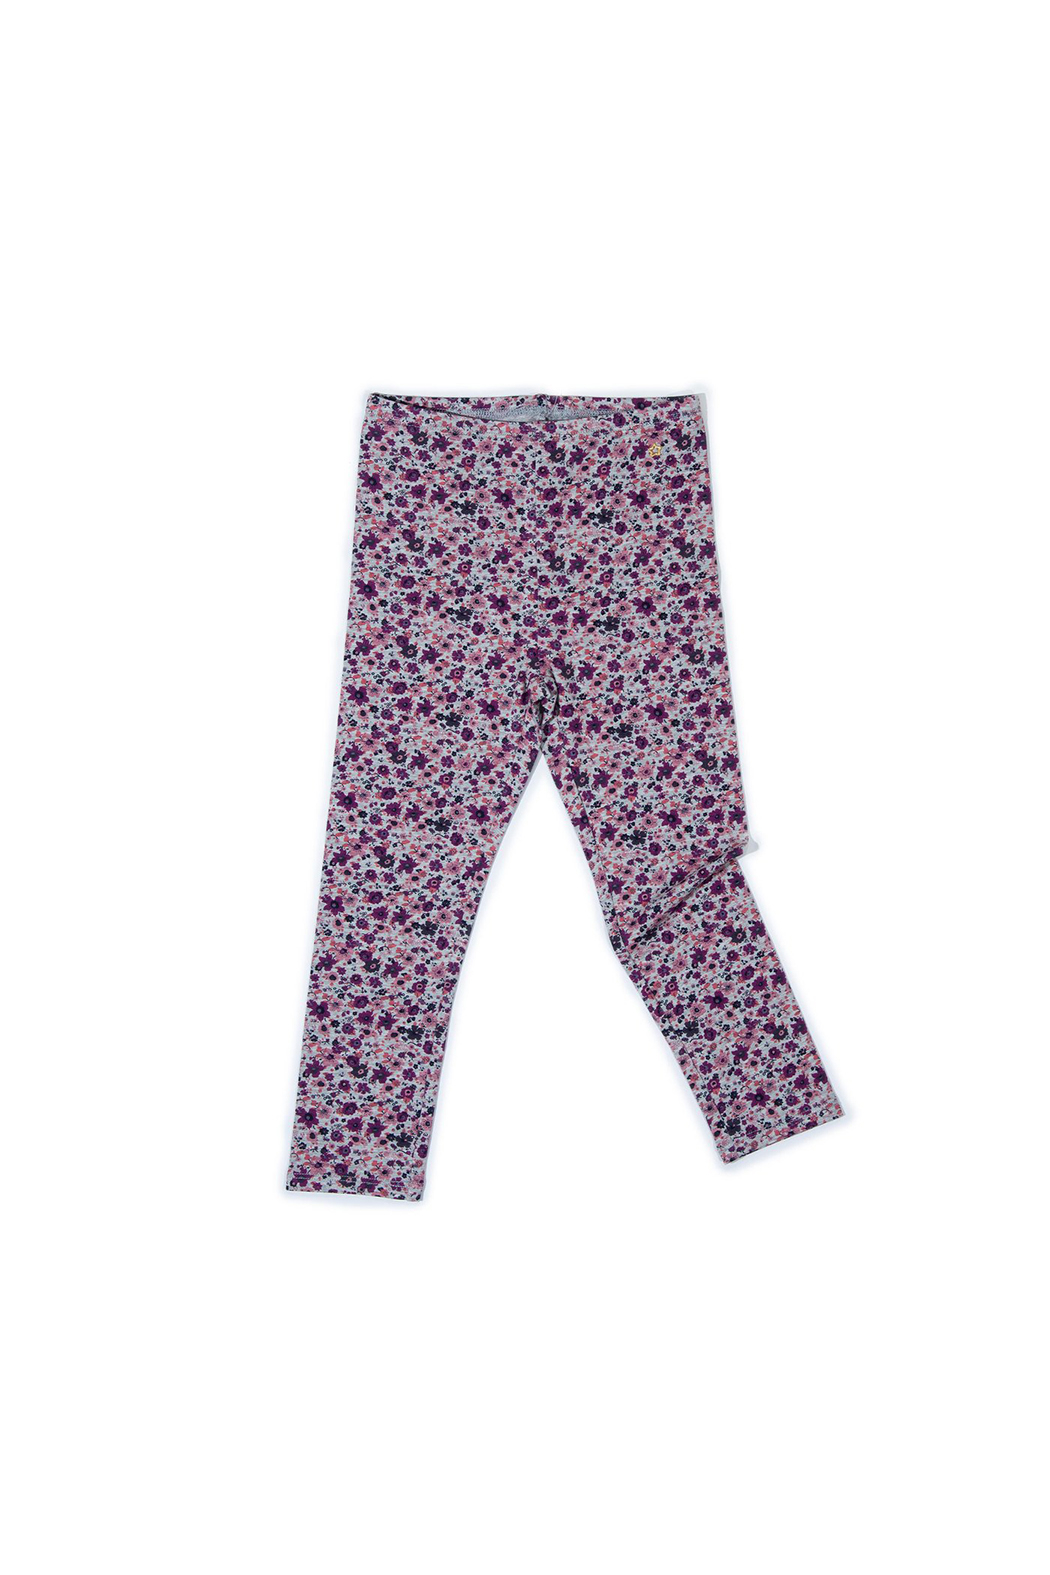 Egg  by Susan Lazar Alyssa Legging - Plum Floral - Main Image